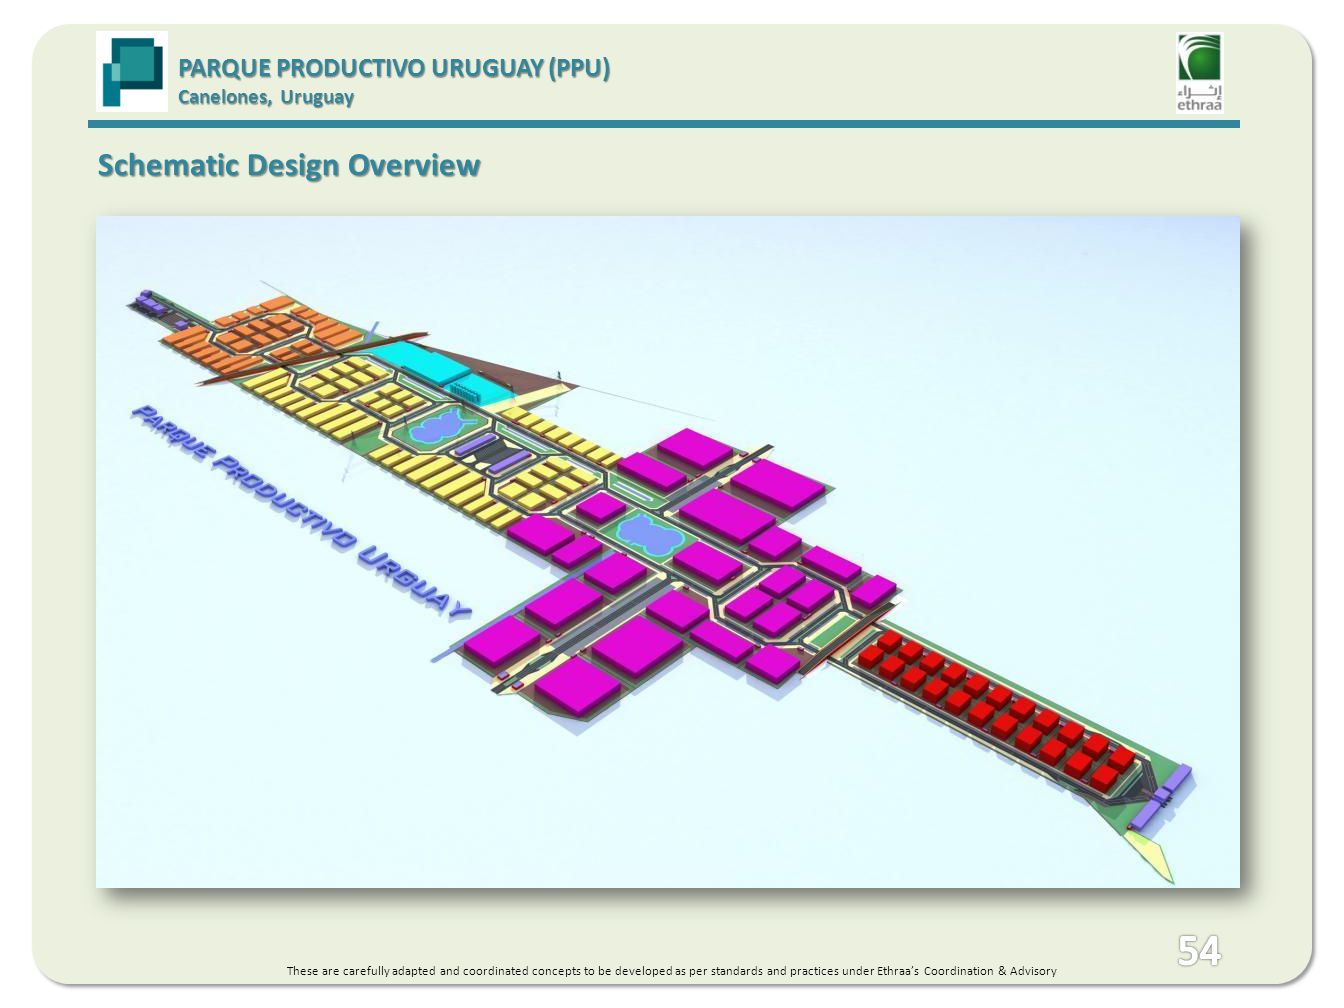 PARQUE PRODUCTIVO URUGUAY (PPU) Canelones, Uruguay Schematic Design Overview These are carefully adapted and coordinated concepts to be developed as per standards and practices under Ethraas Coordination & Advisory